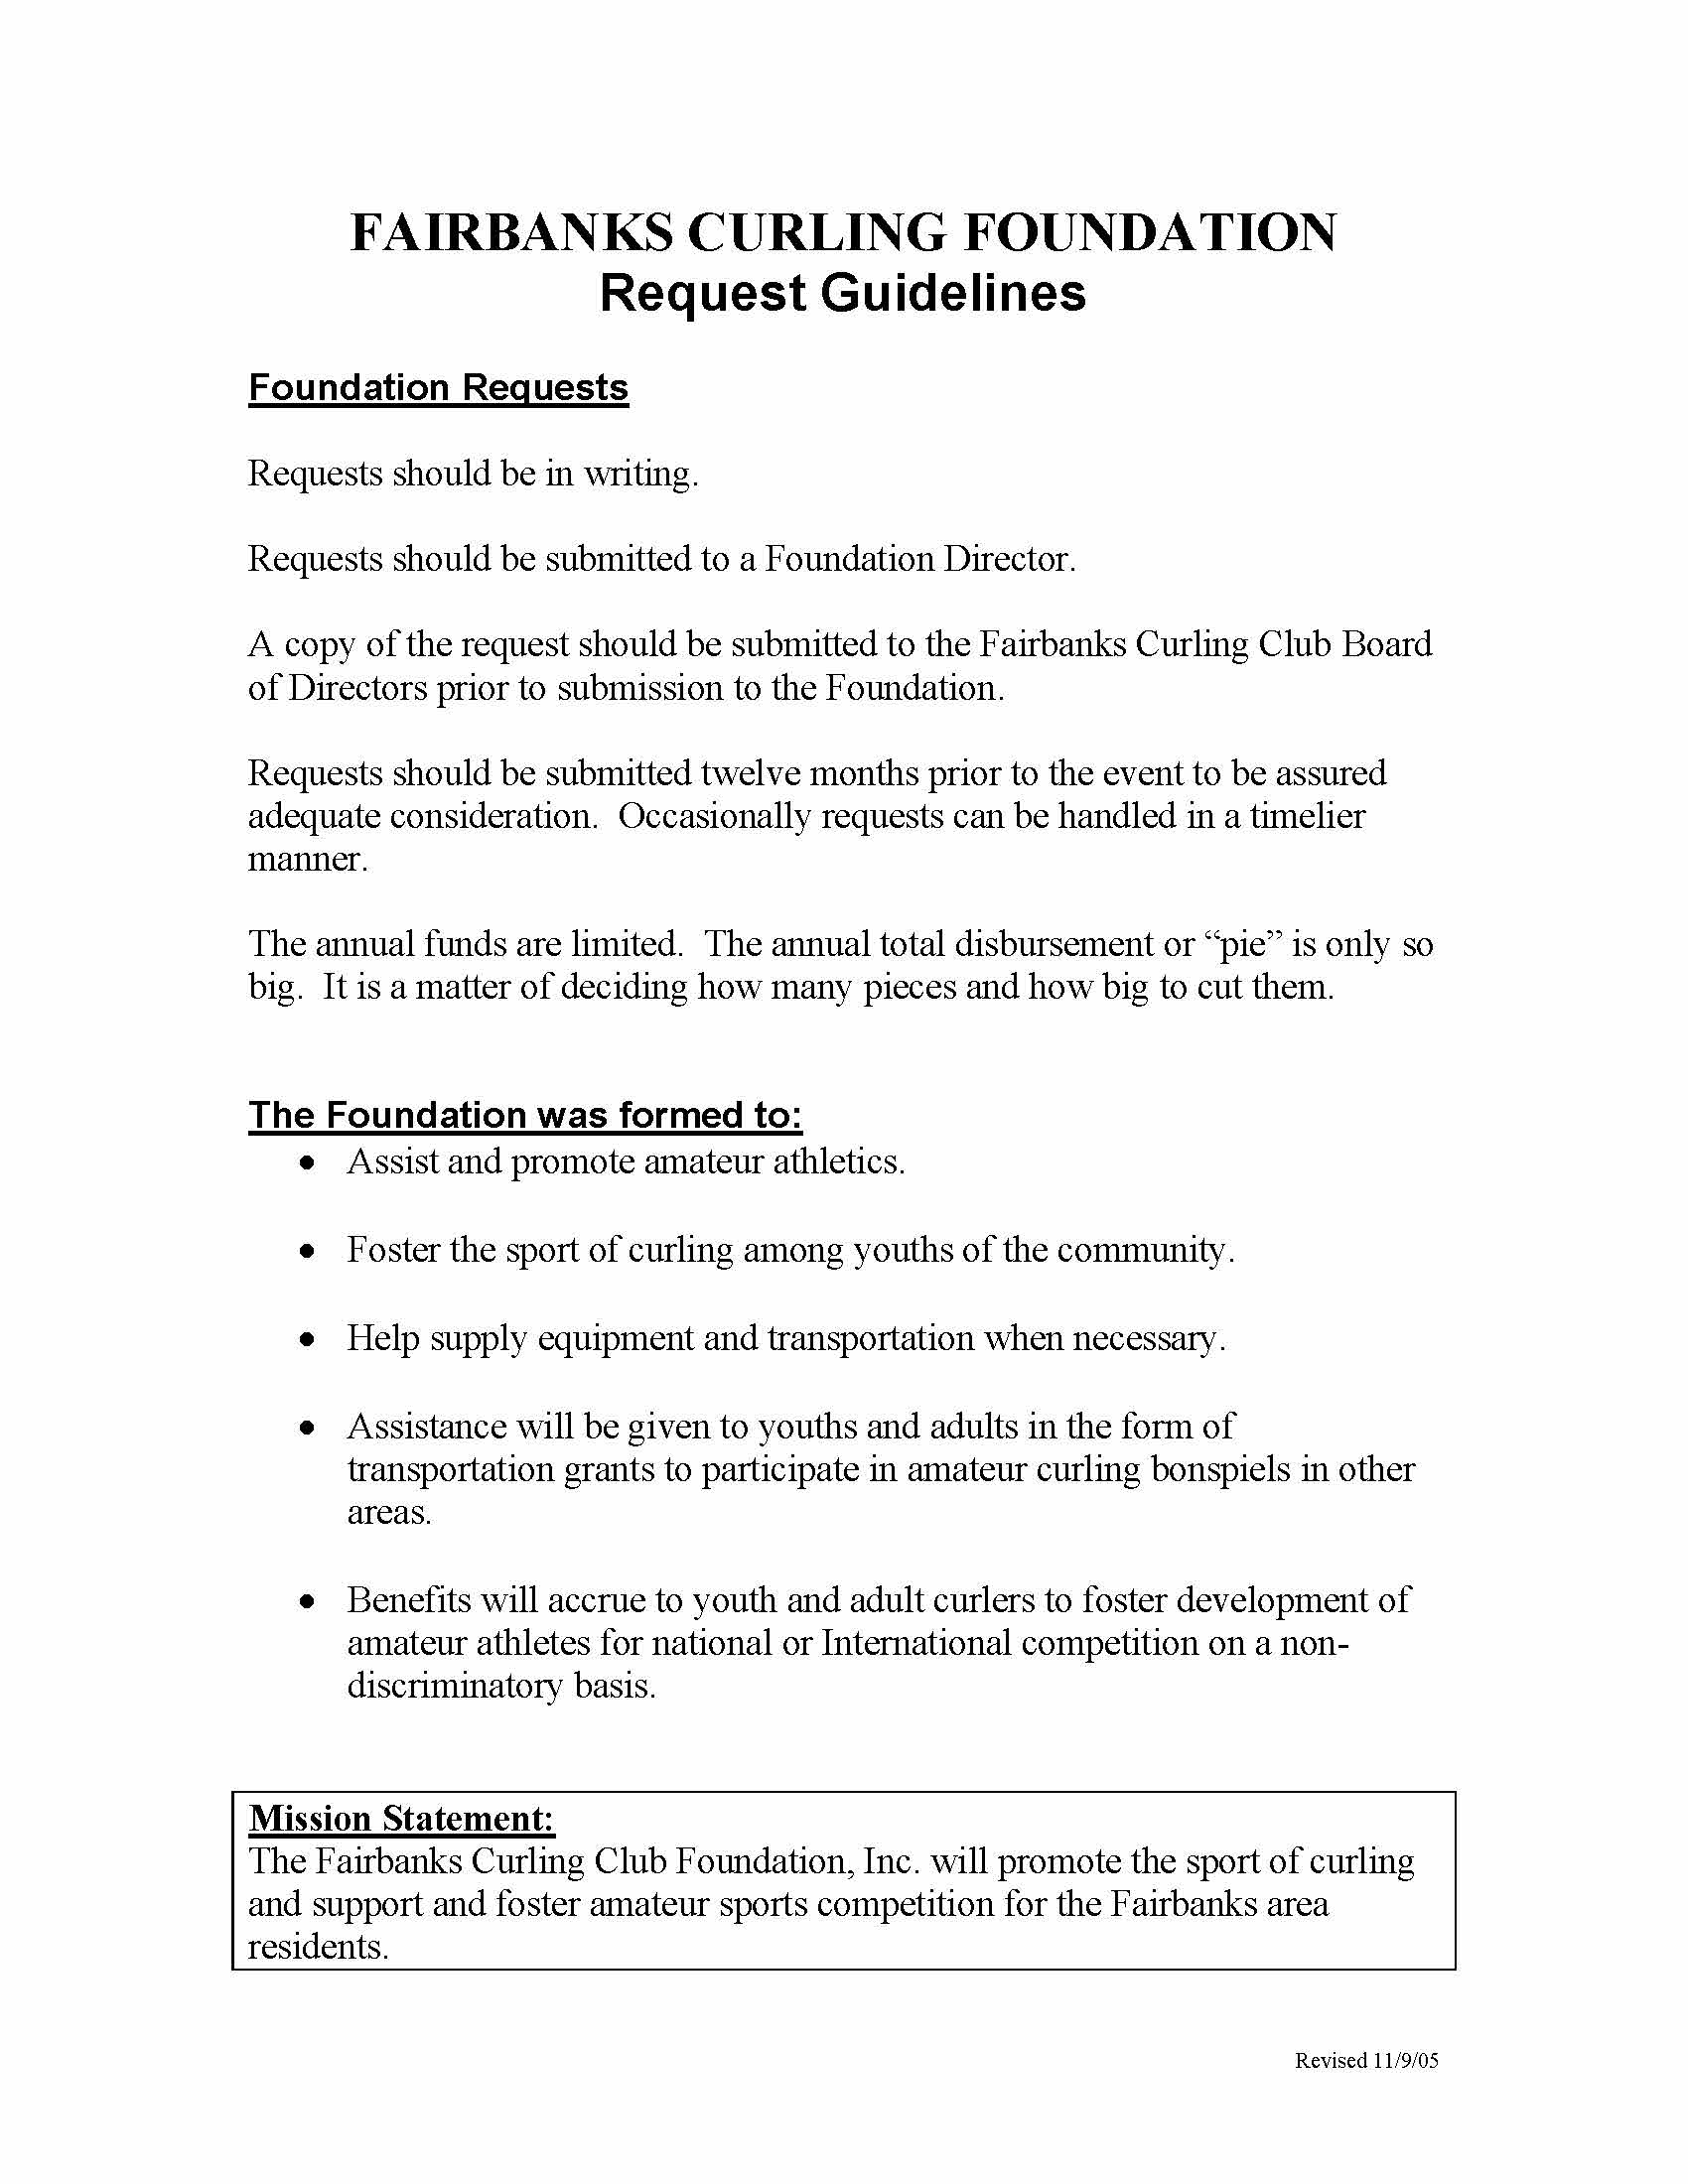 request_guidelines_11.8.05.jpg